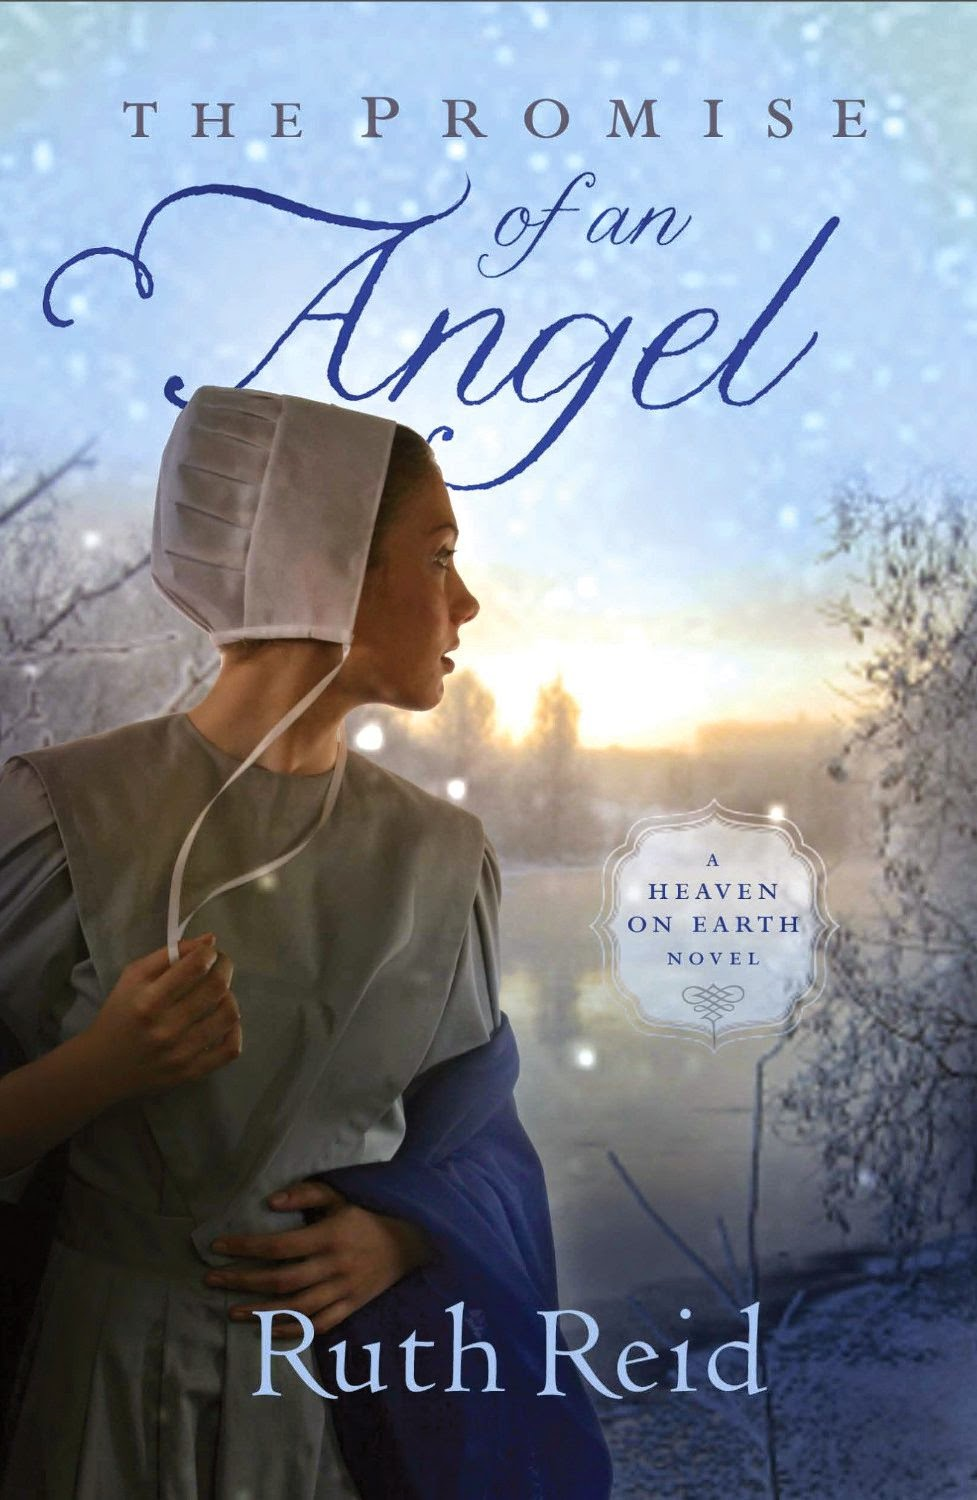 http://www.amazon.com/Promise-Angel-Heaven-Earth-Novel-ebook/dp/B004Z8J216/ref=sr_1_1?s=digital-text&ie=UTF8&qid=1409321328&sr=1-1&keywords=the+promise+of+an+angel